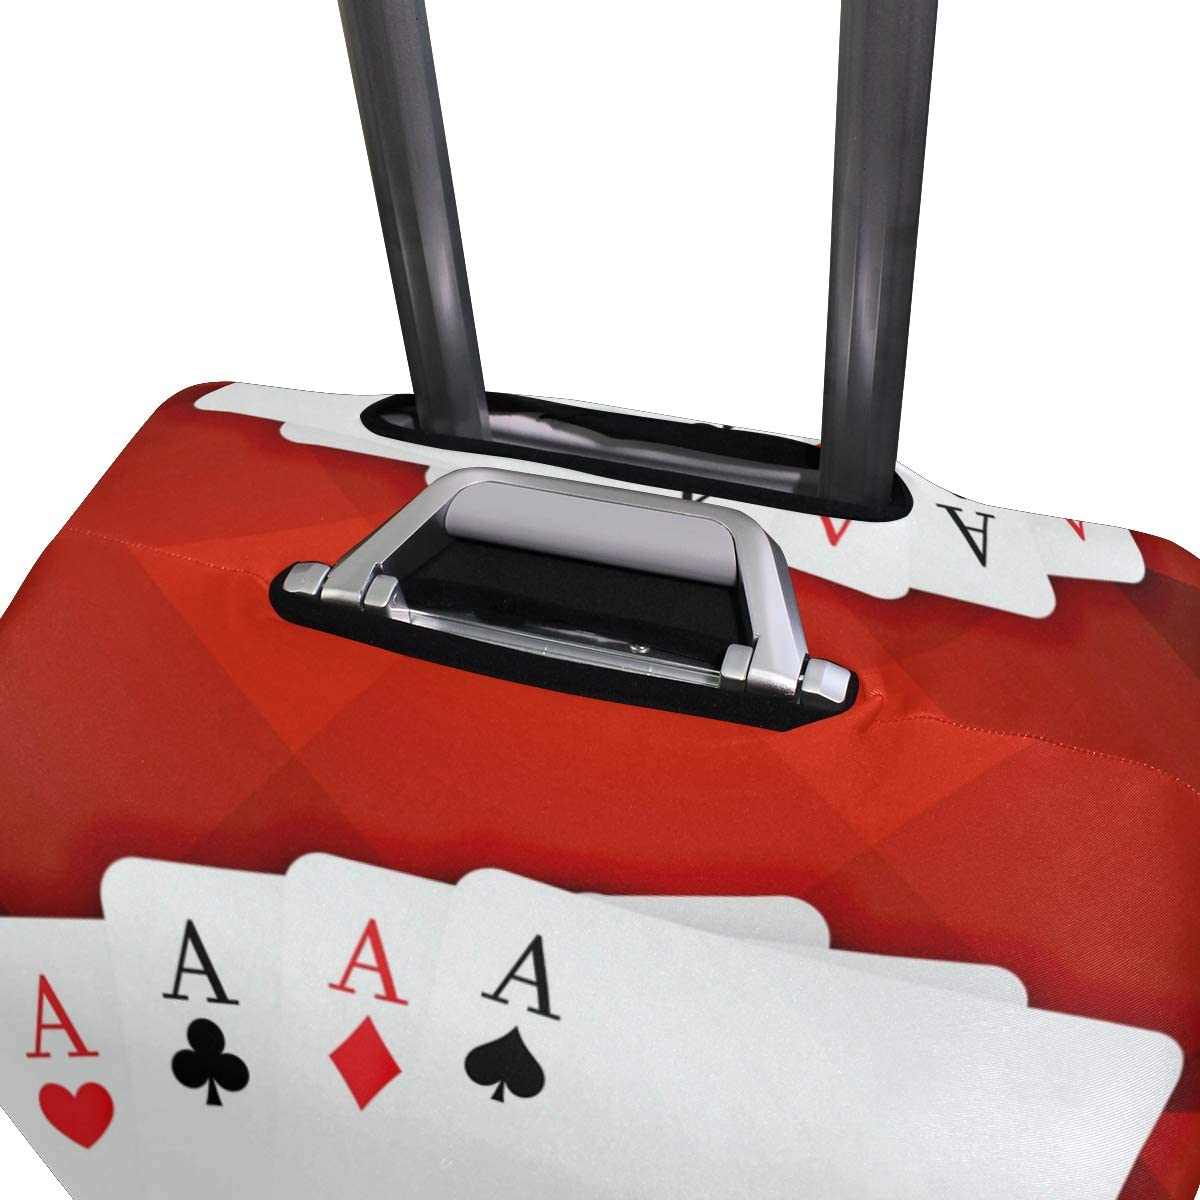 3D Playing Cards With Casino Coins And Dice Print Luggage Protector Travel Luggage Cover Trolley Case Protective Cover Fits 18-32 Inch